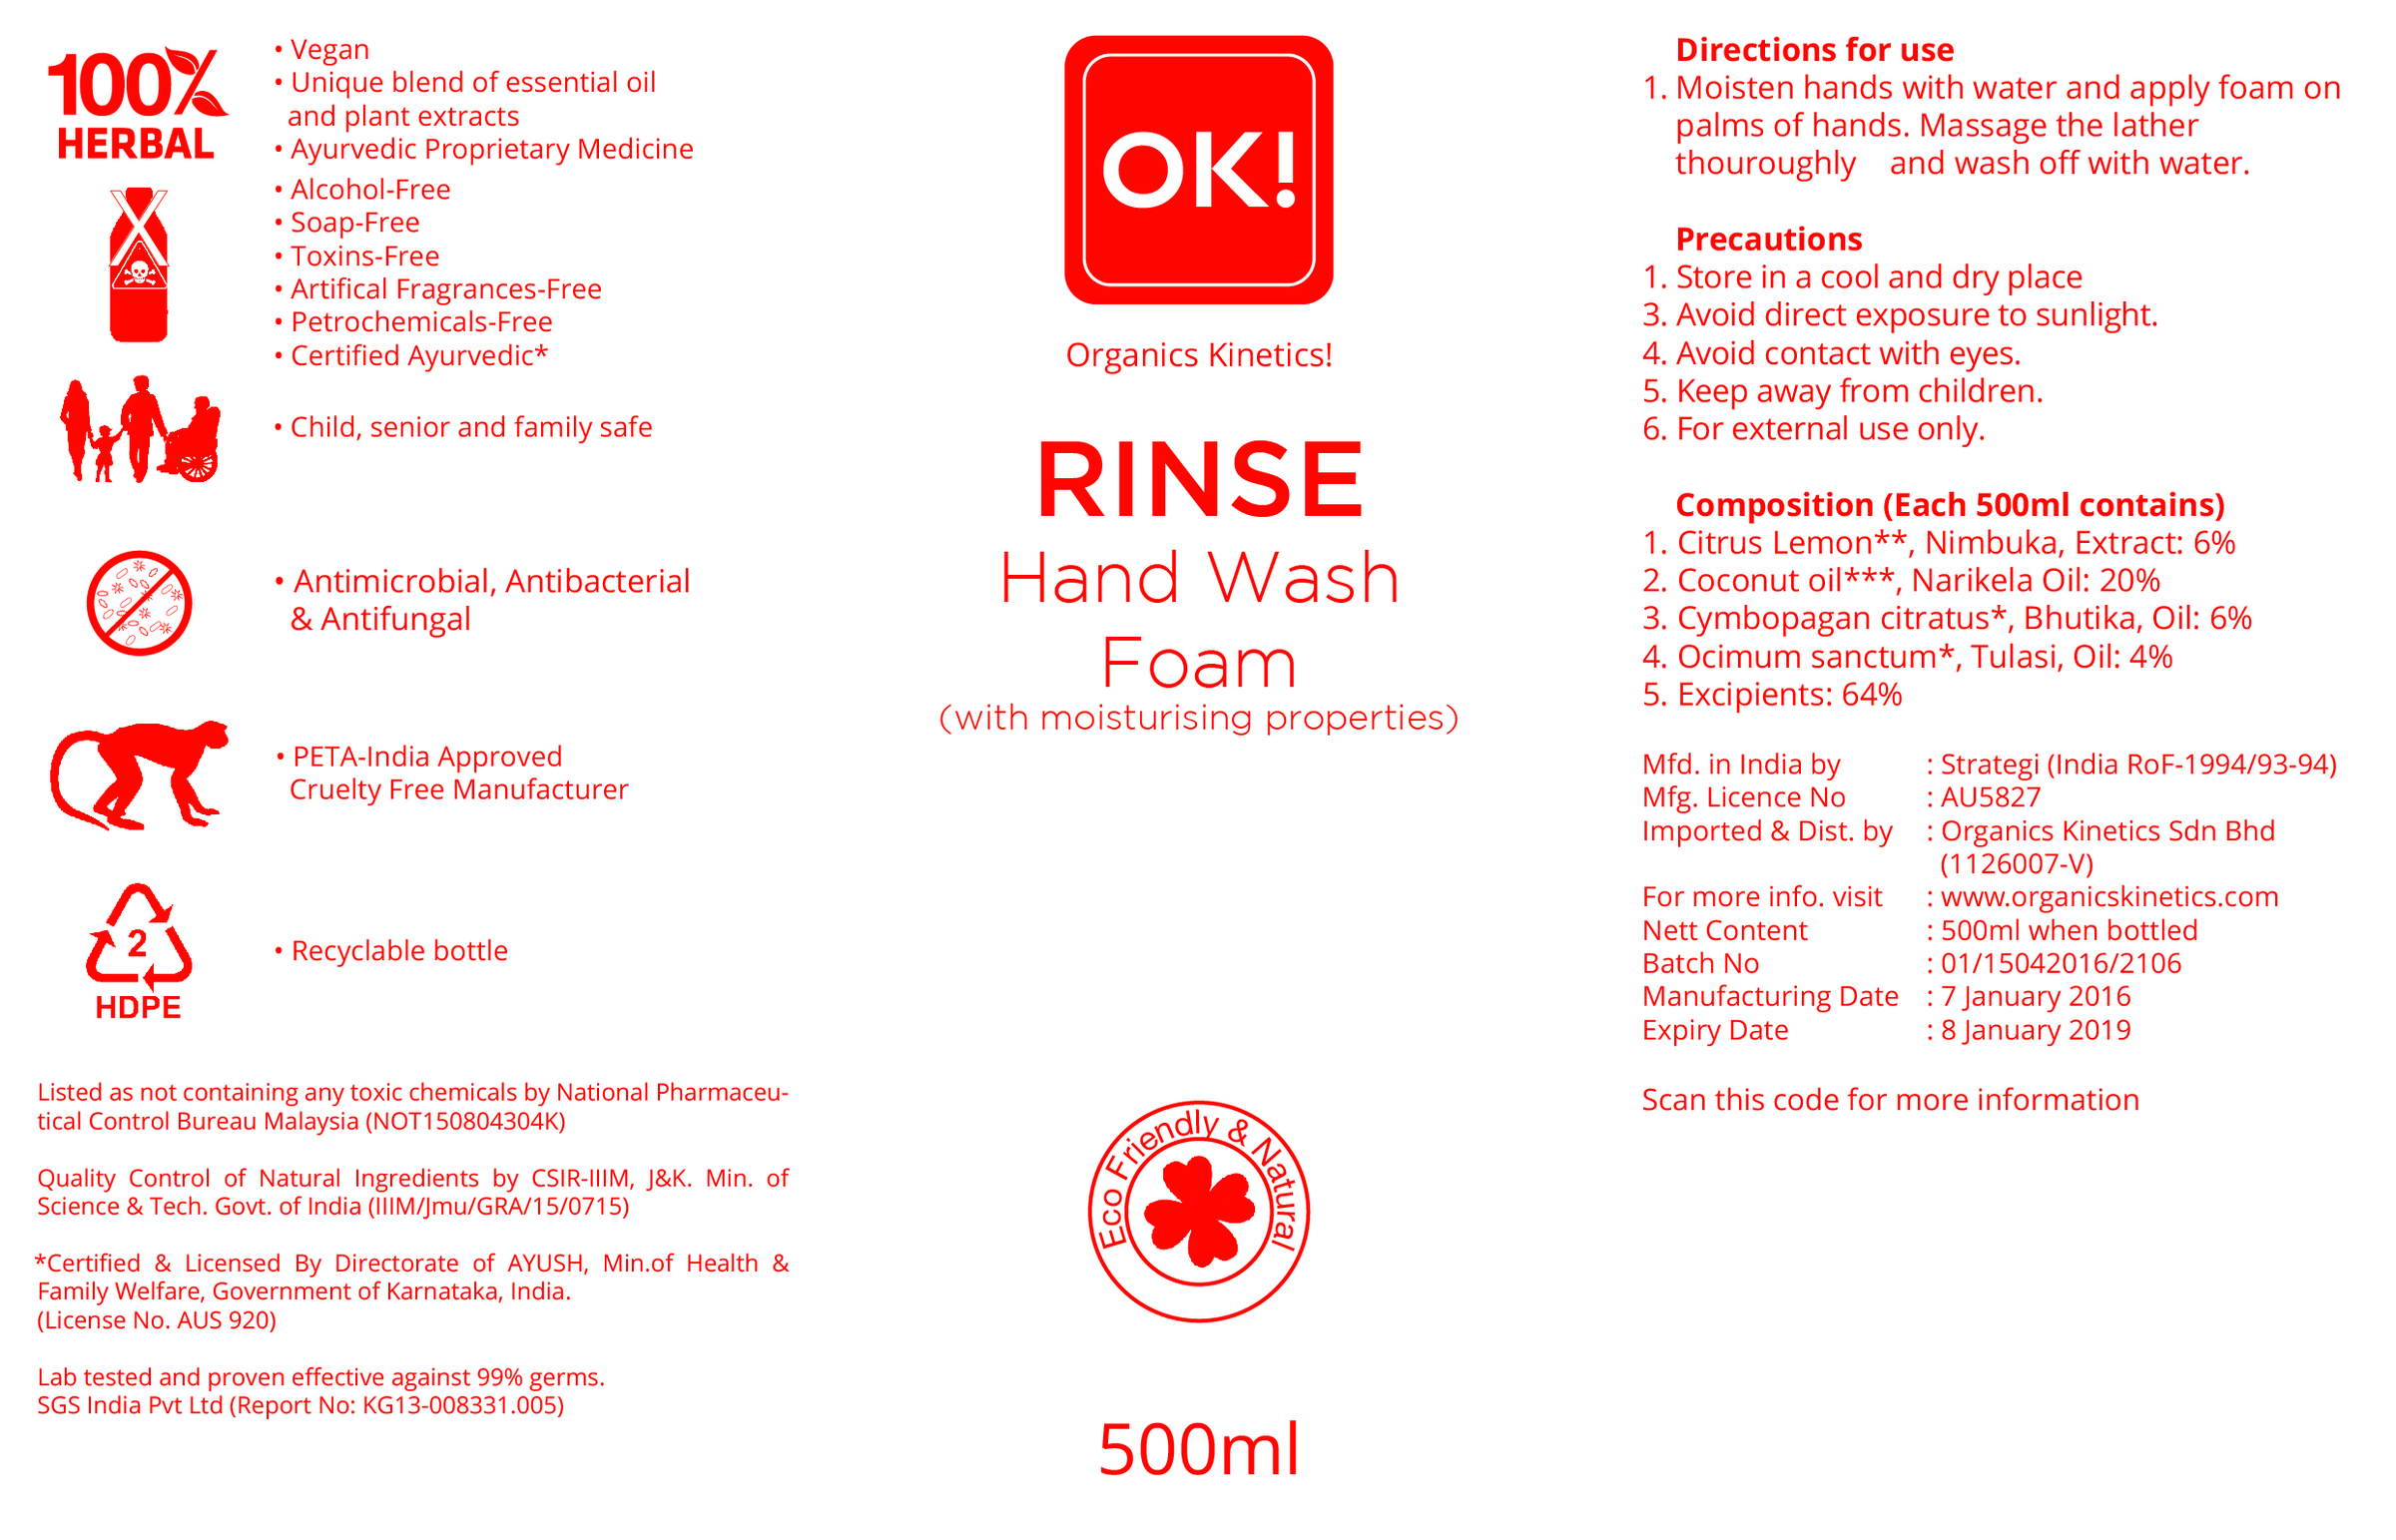 OK! Label 1_1 RINSE 500ml 01 26042016 FA-01.jpg